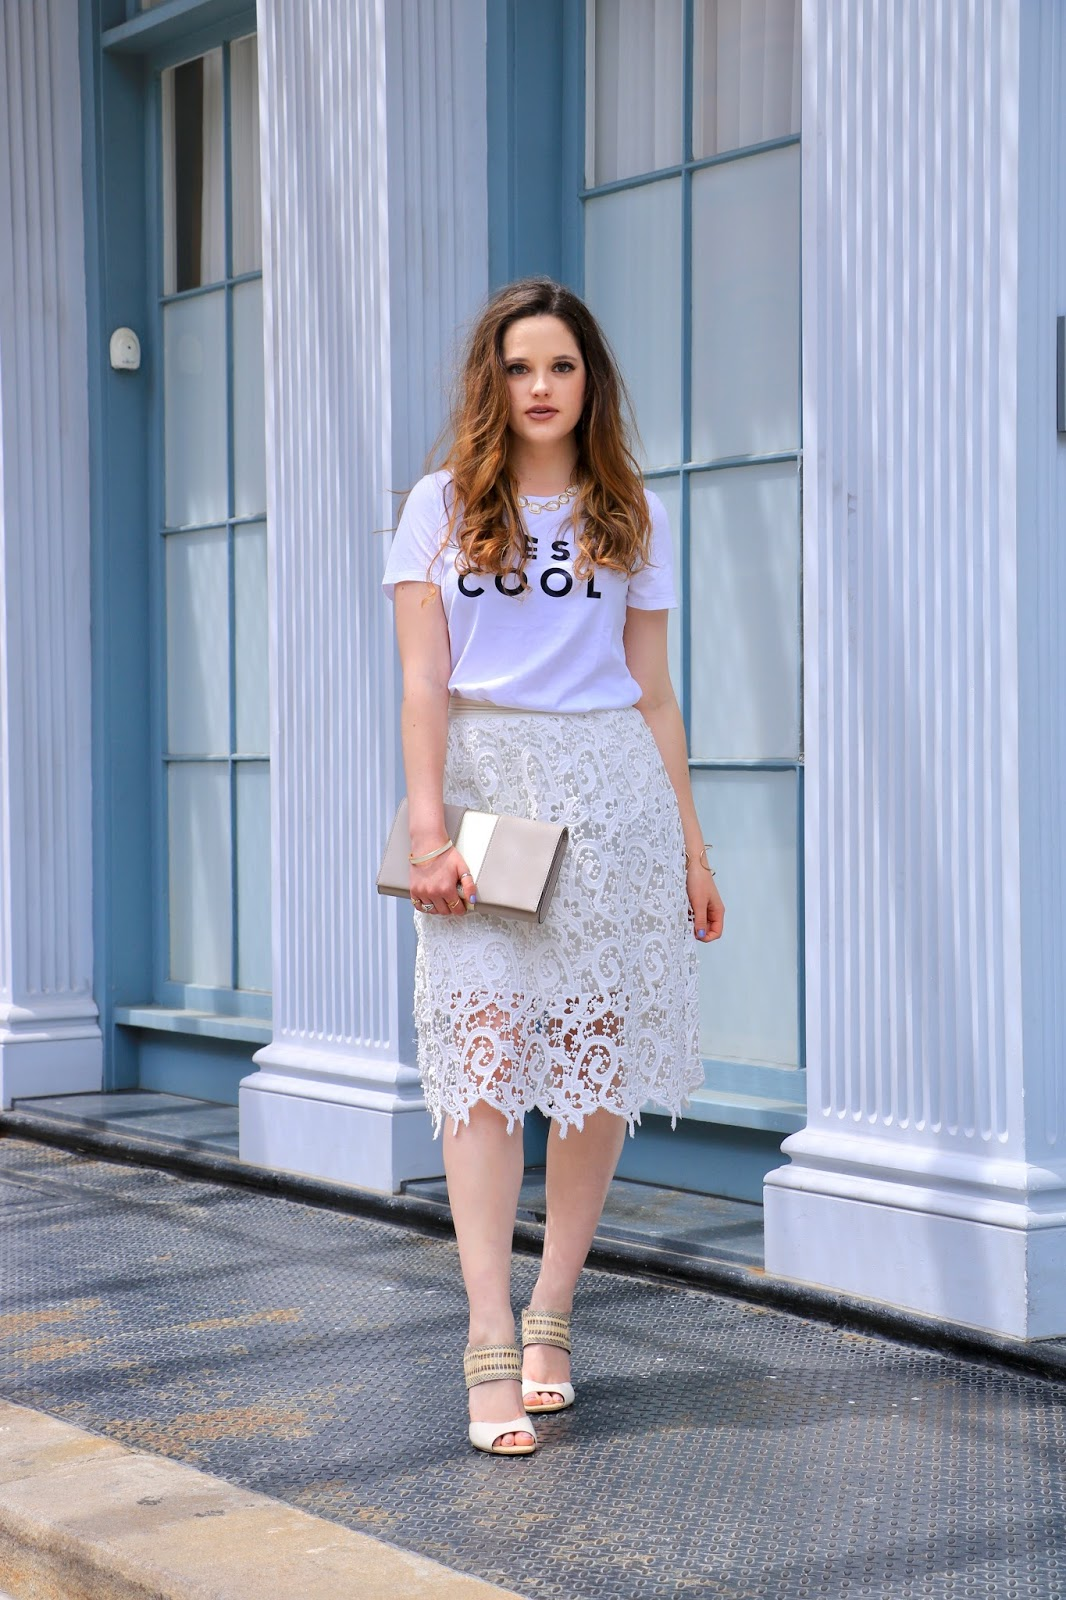 nyc fashion blogger Kathleen Harper showing off summer street style